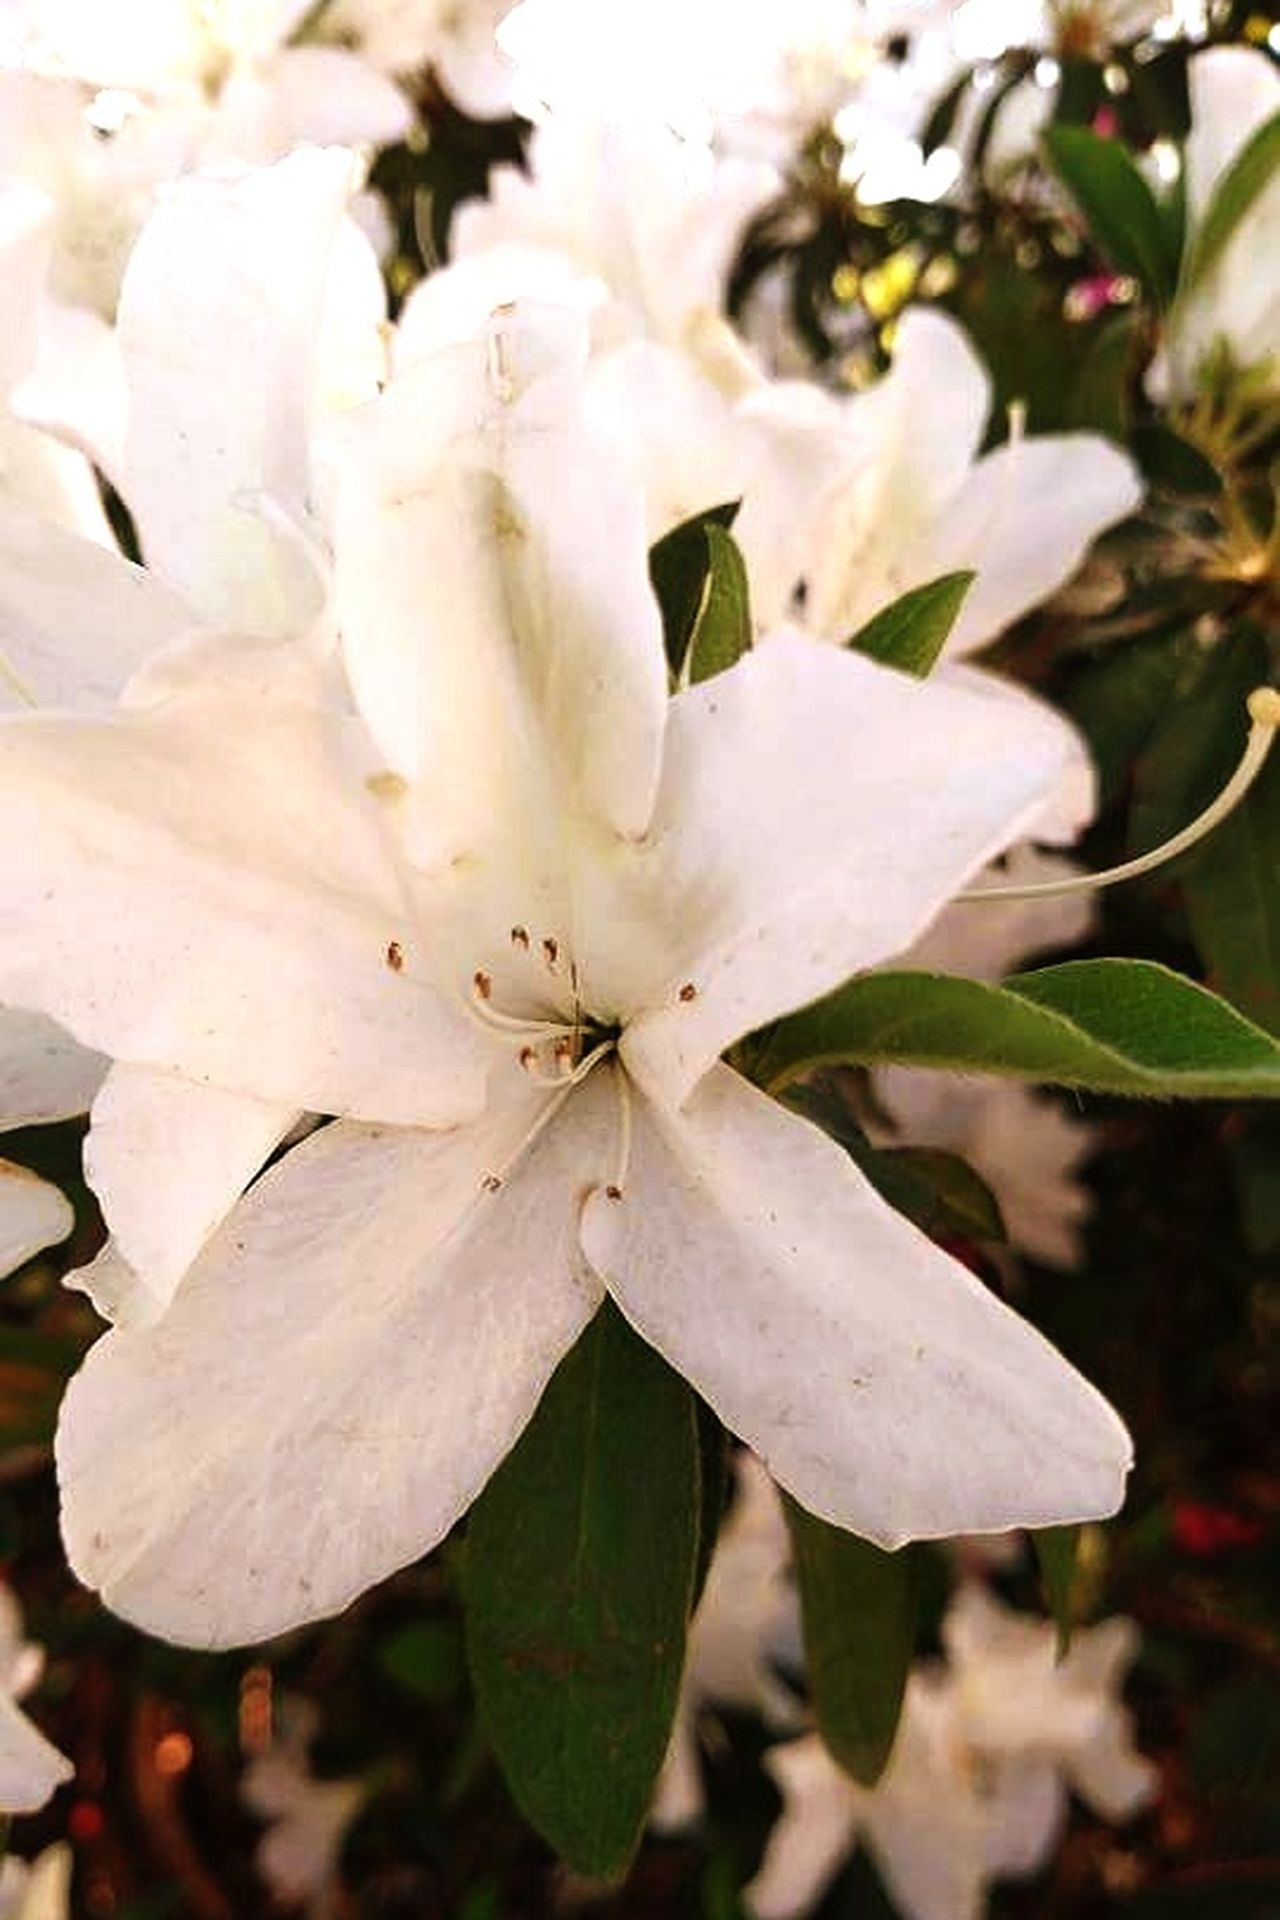 Nature Growth Beauty In Nature Plant Close-up Outdoors Tranquility Freshness Flower No People Flower Head Day Fragility Texas EyeEmNewHere Garden Photography Gardenia Water